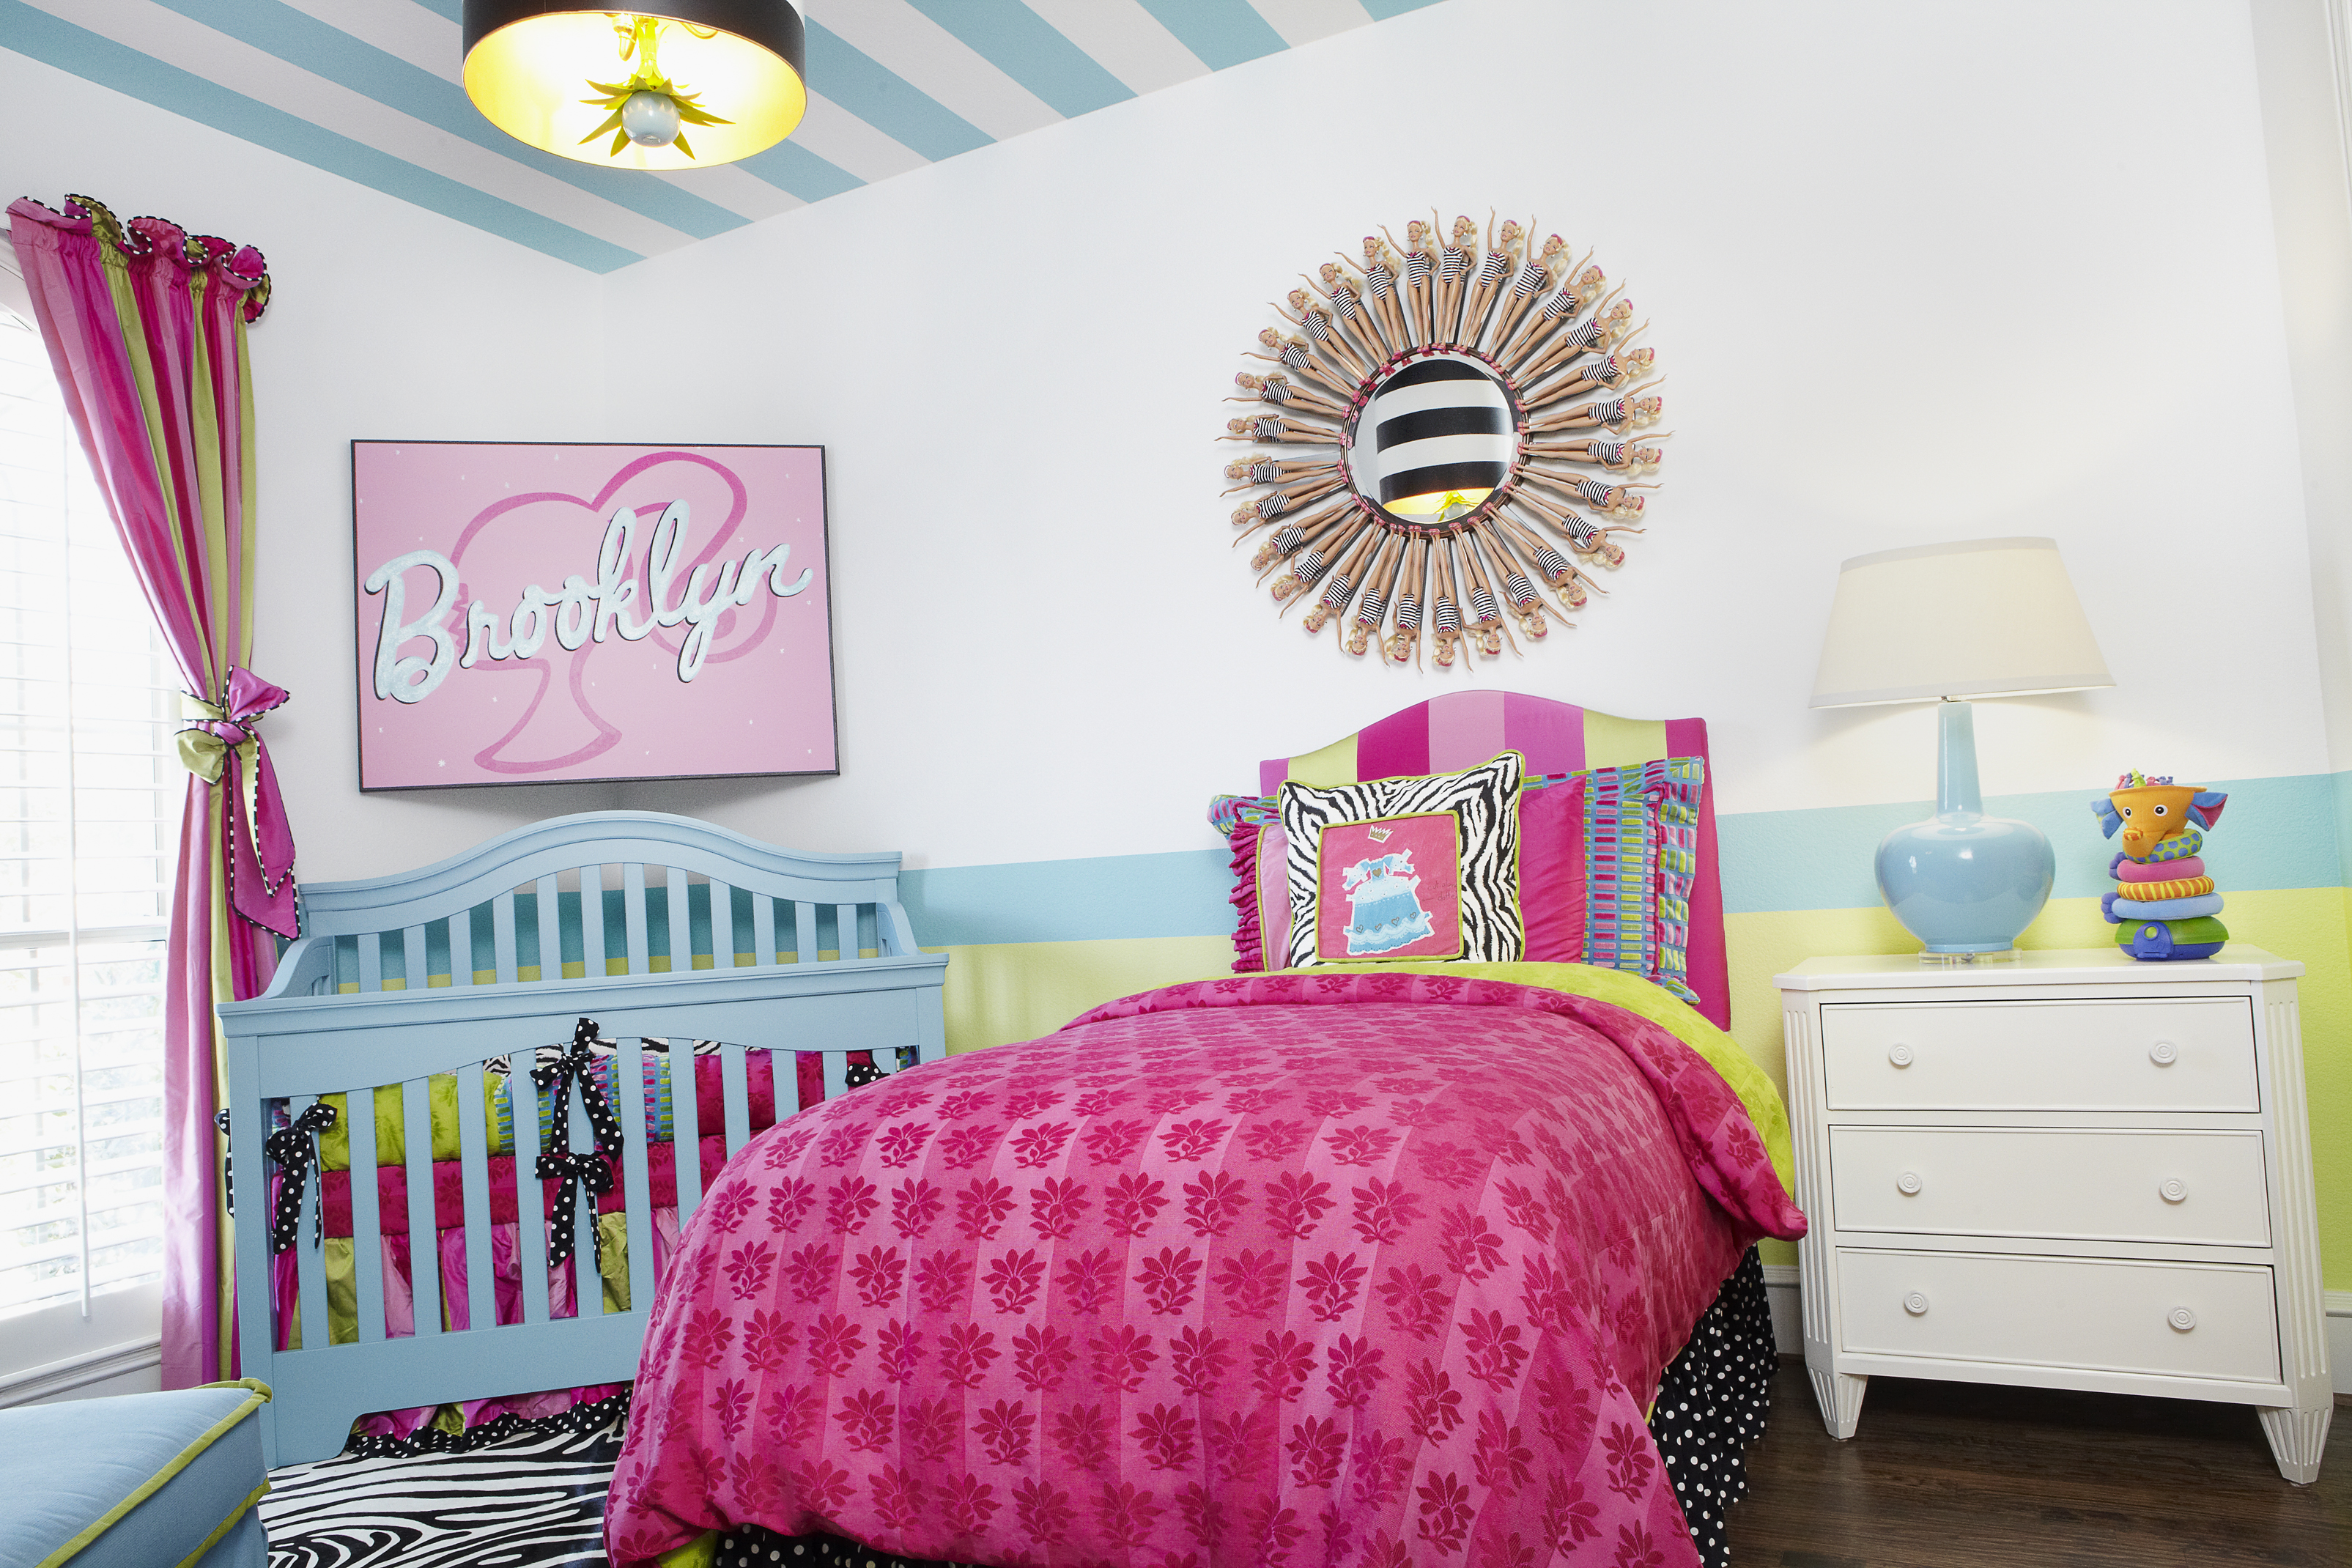 Nursery with Striped Ceilings and Barbie Art Room View